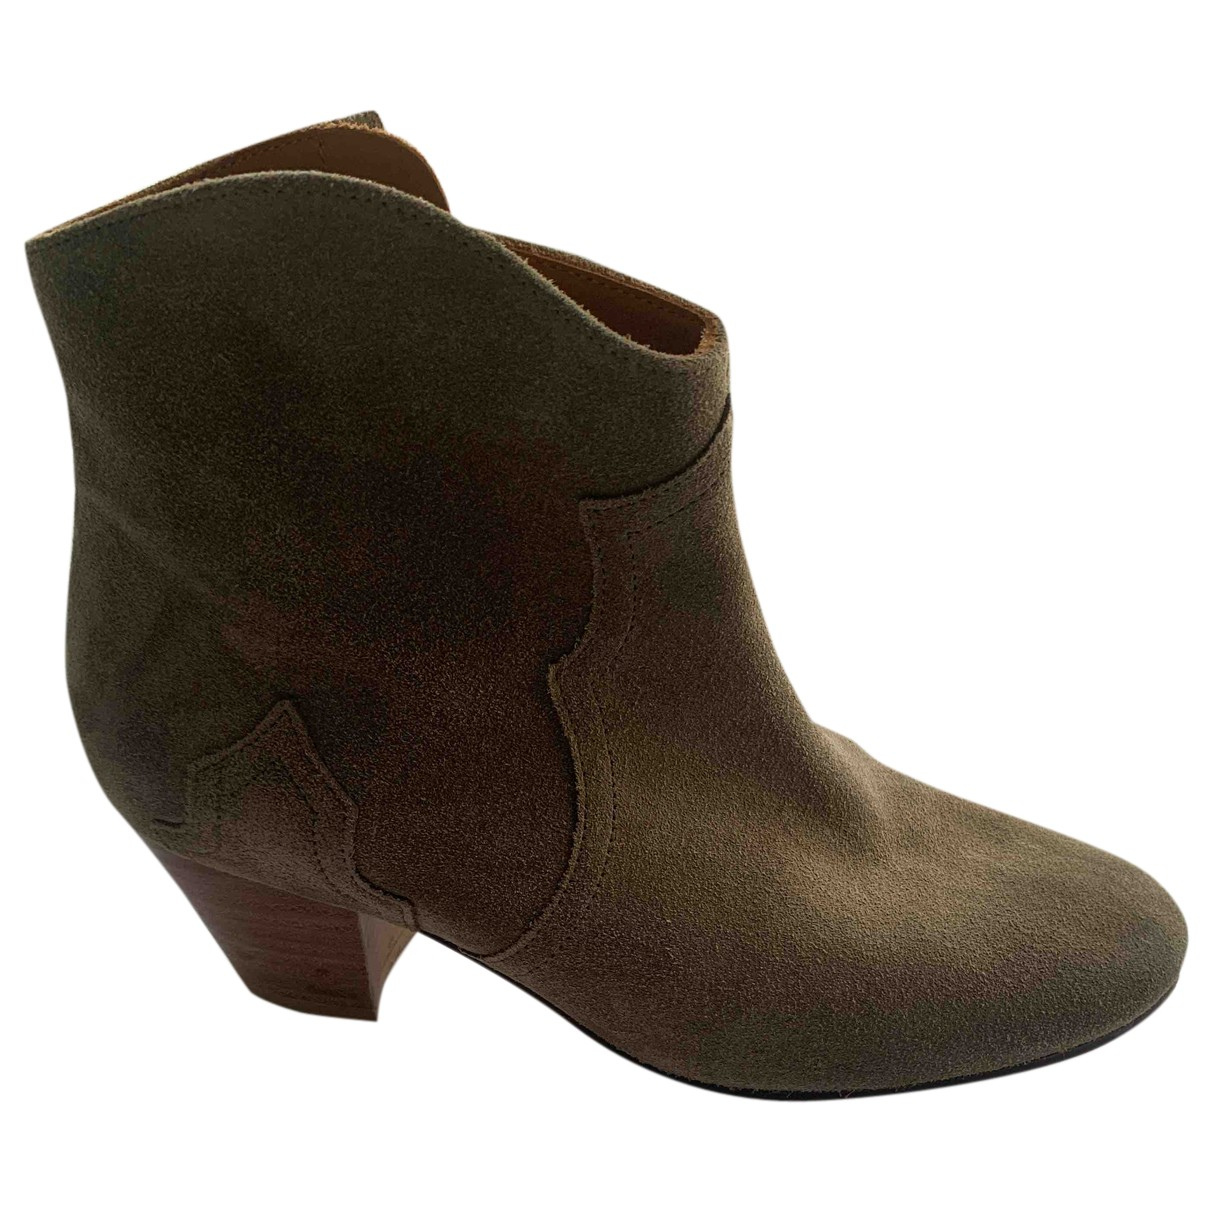 Isabel Marant N Suede Boots for Women 36 EU